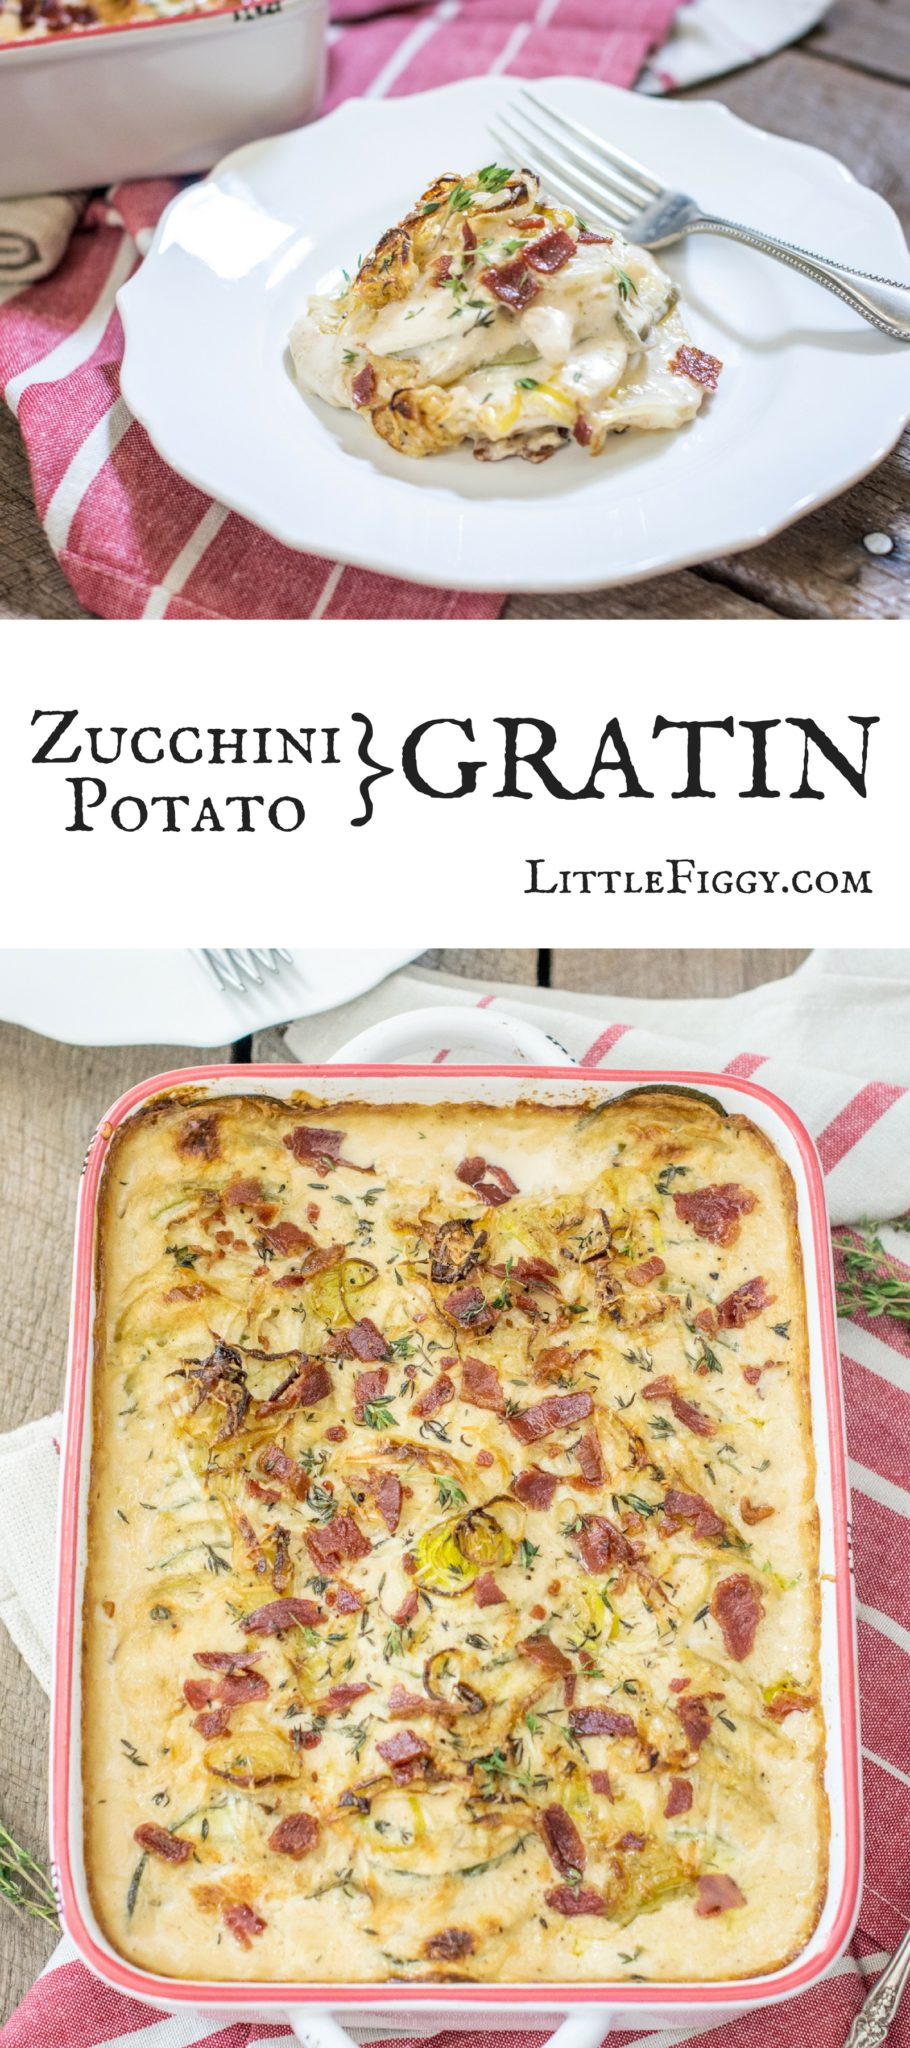 Creamy, cheesy and delish! Try this Zucchini Potato Gratin recipe, it's layered with yum and perfect as a side dish for any occasion! Get the recipe at Little Figgy Food. #ad